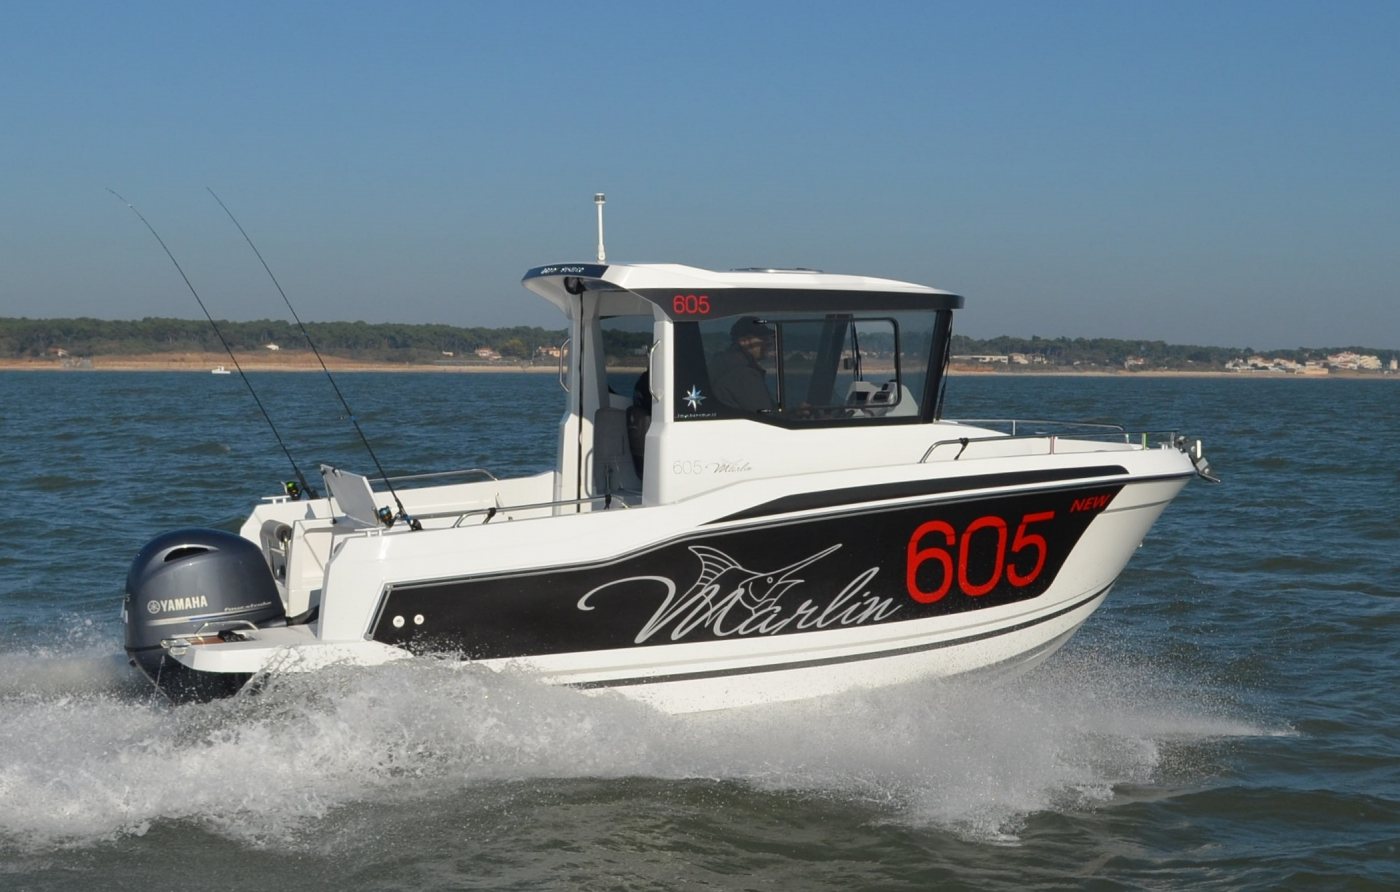 Jeanneau Merry Fisher 605 Marlin Motor Boat - Sea Ventures